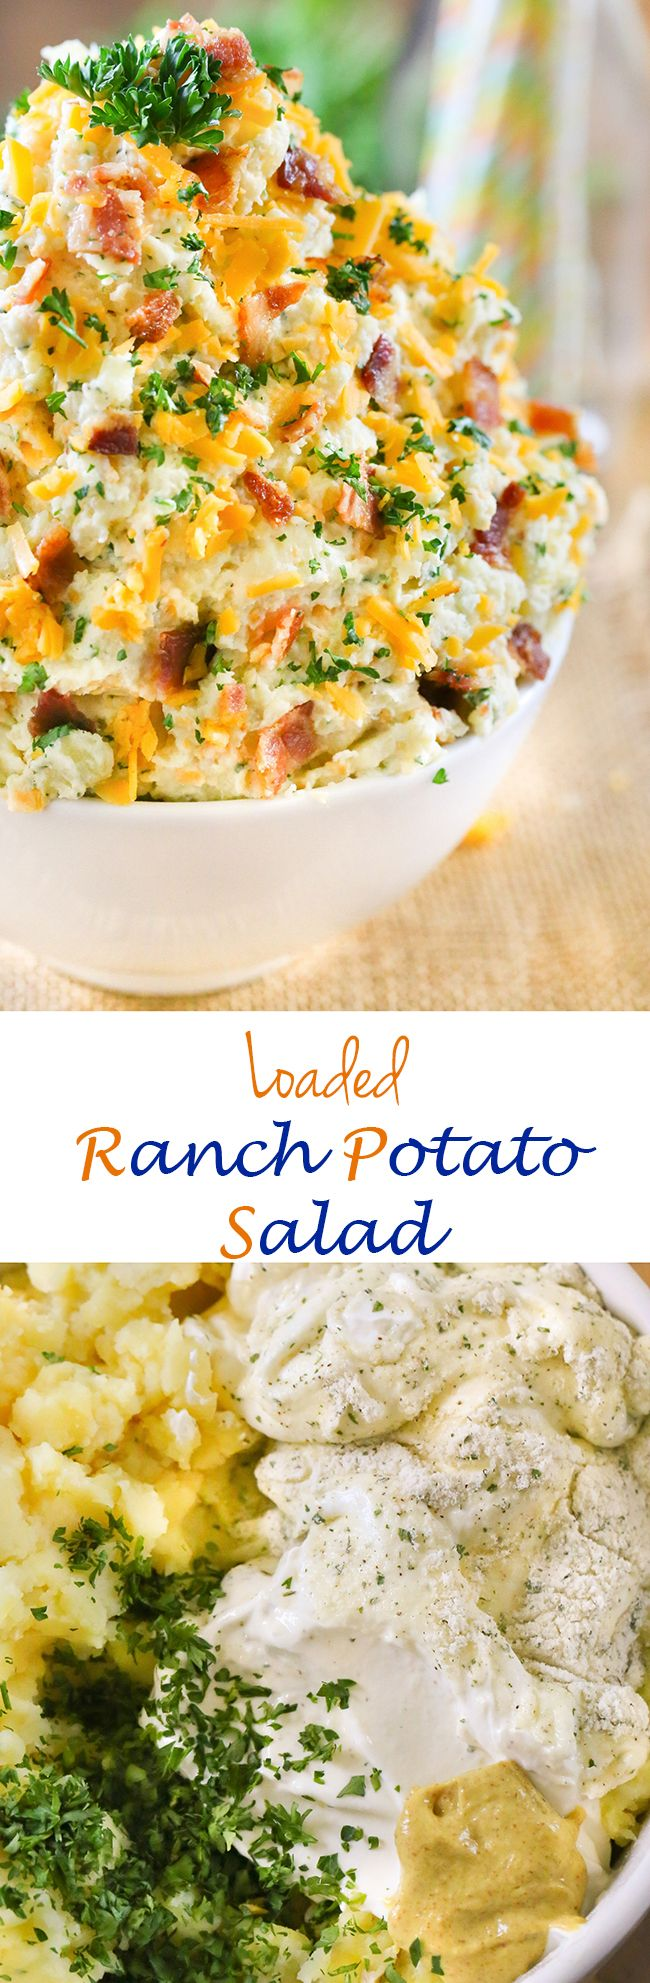 Loaded Ranch Potato Salad - No backyard barbecue is complete without potato salad. This classic recipe is made with a new twist and has a permanent place on our summertime menu with @Frenchs #AD #FrenchsCrowd #FrenchsMustard